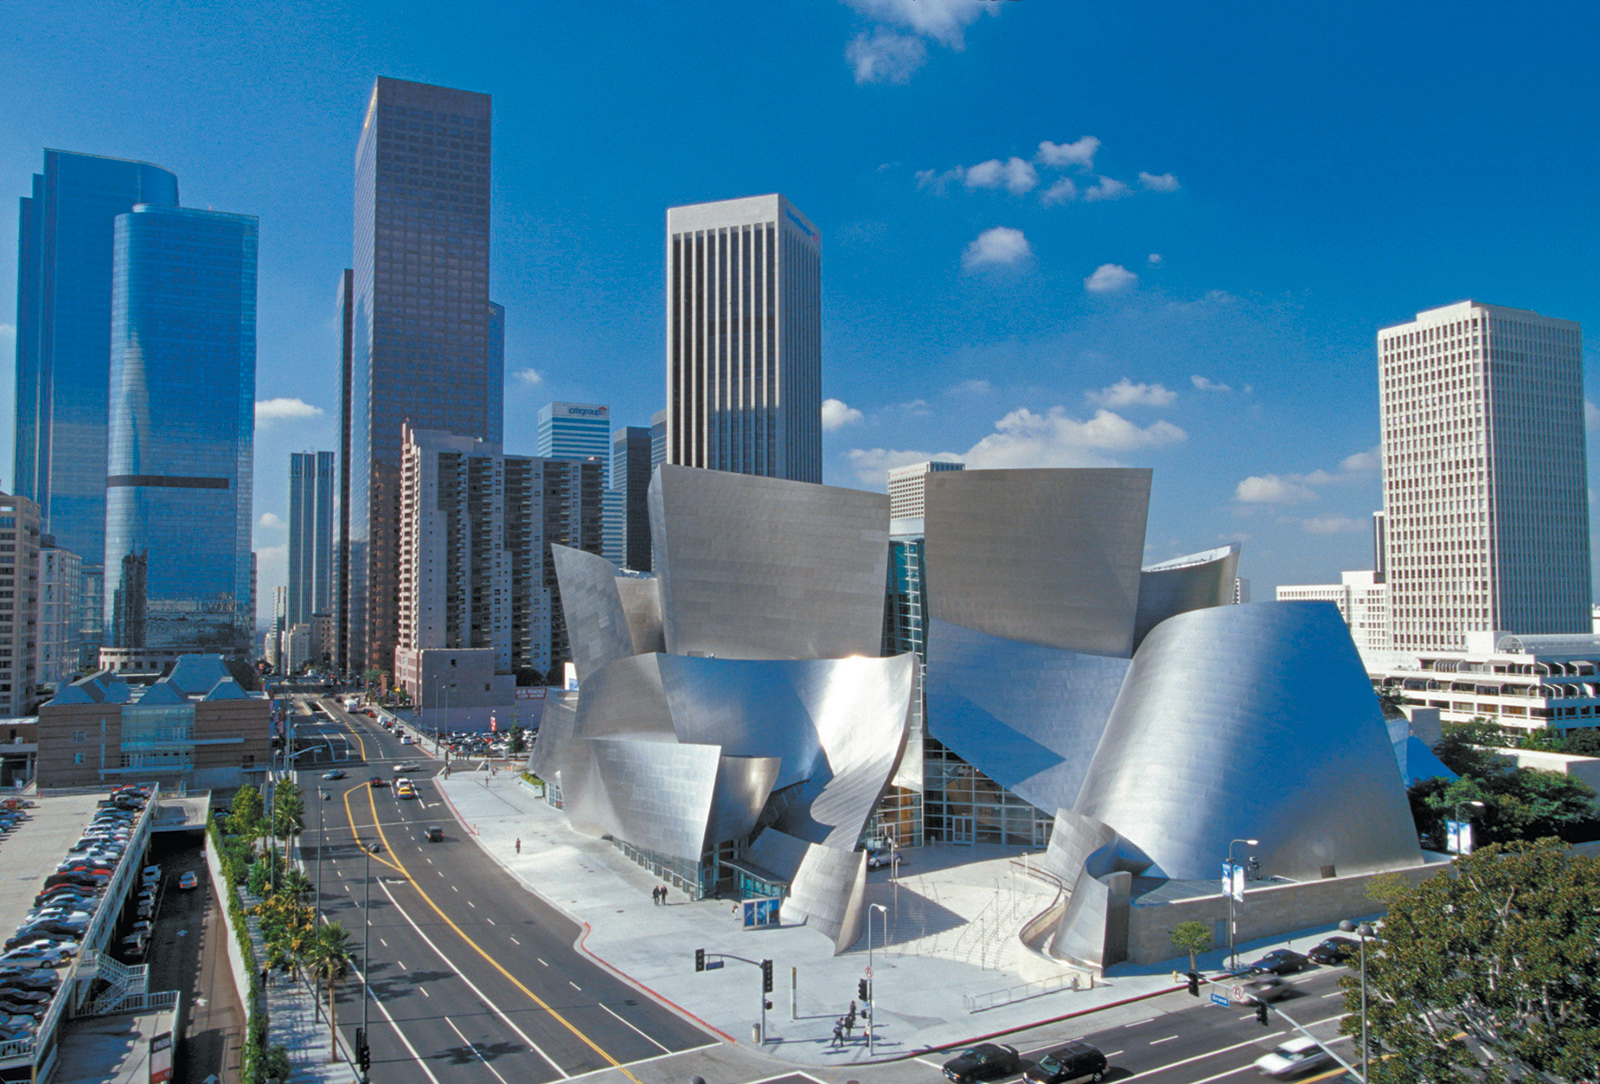 The Walt Disney Concert Hall in Los Angeles, designed by Frank Gehry